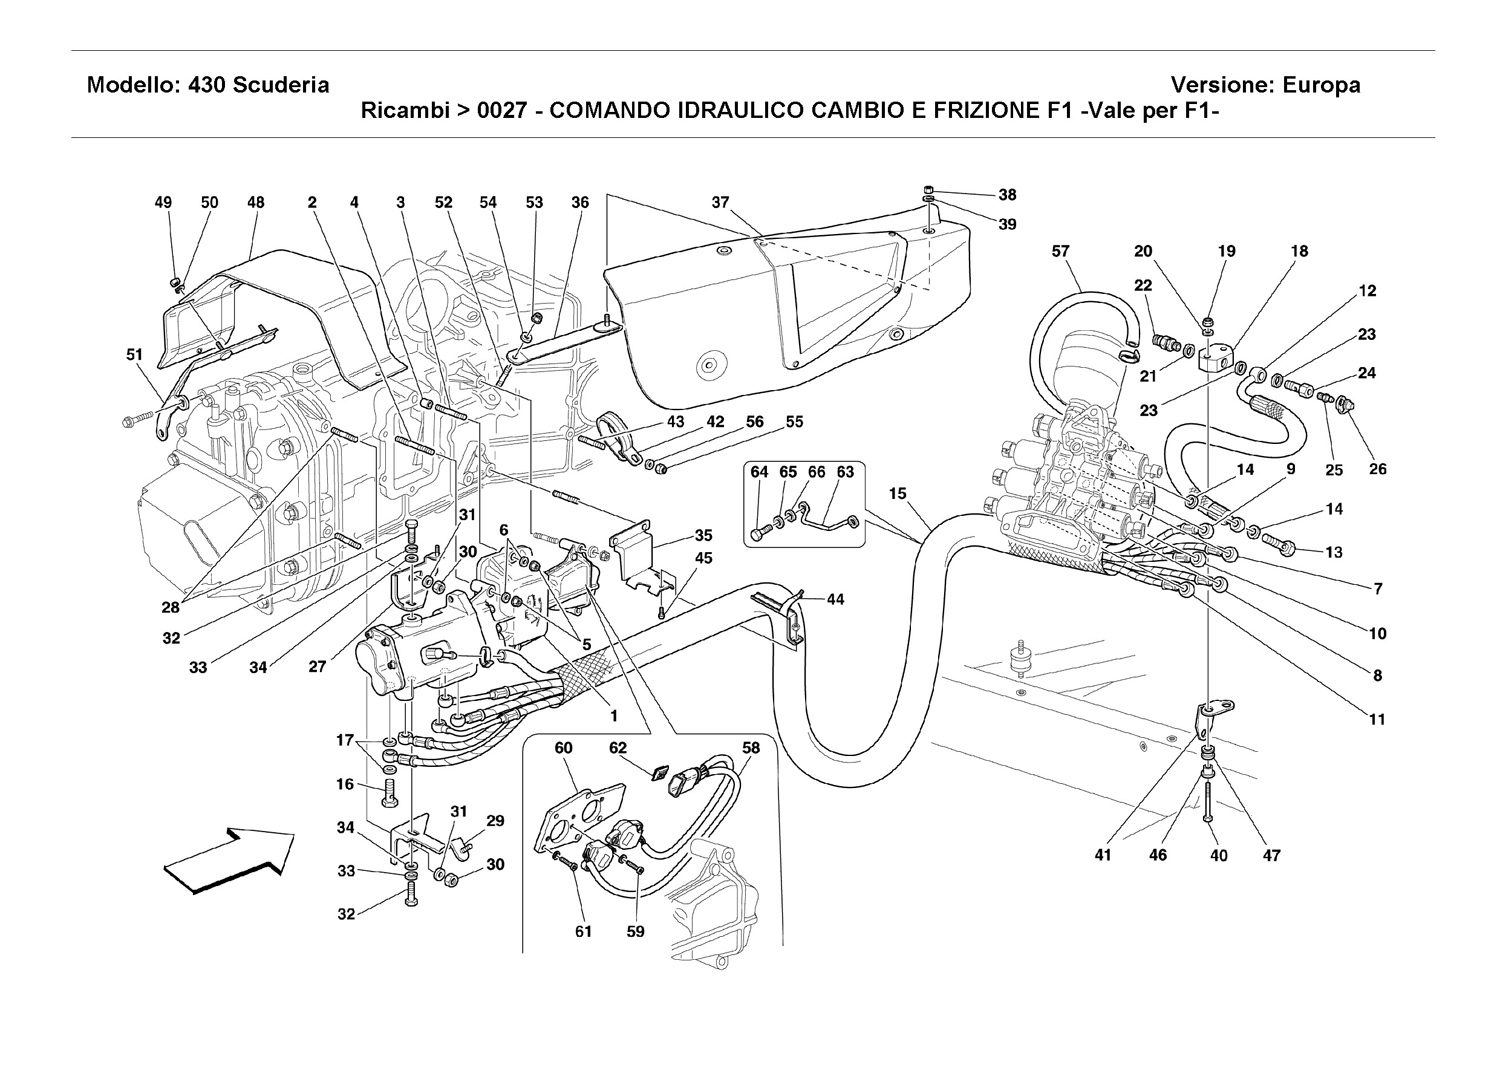 F1 CLUTCH AND GEARBOX HYDRAULIC CONTROL -Valid for